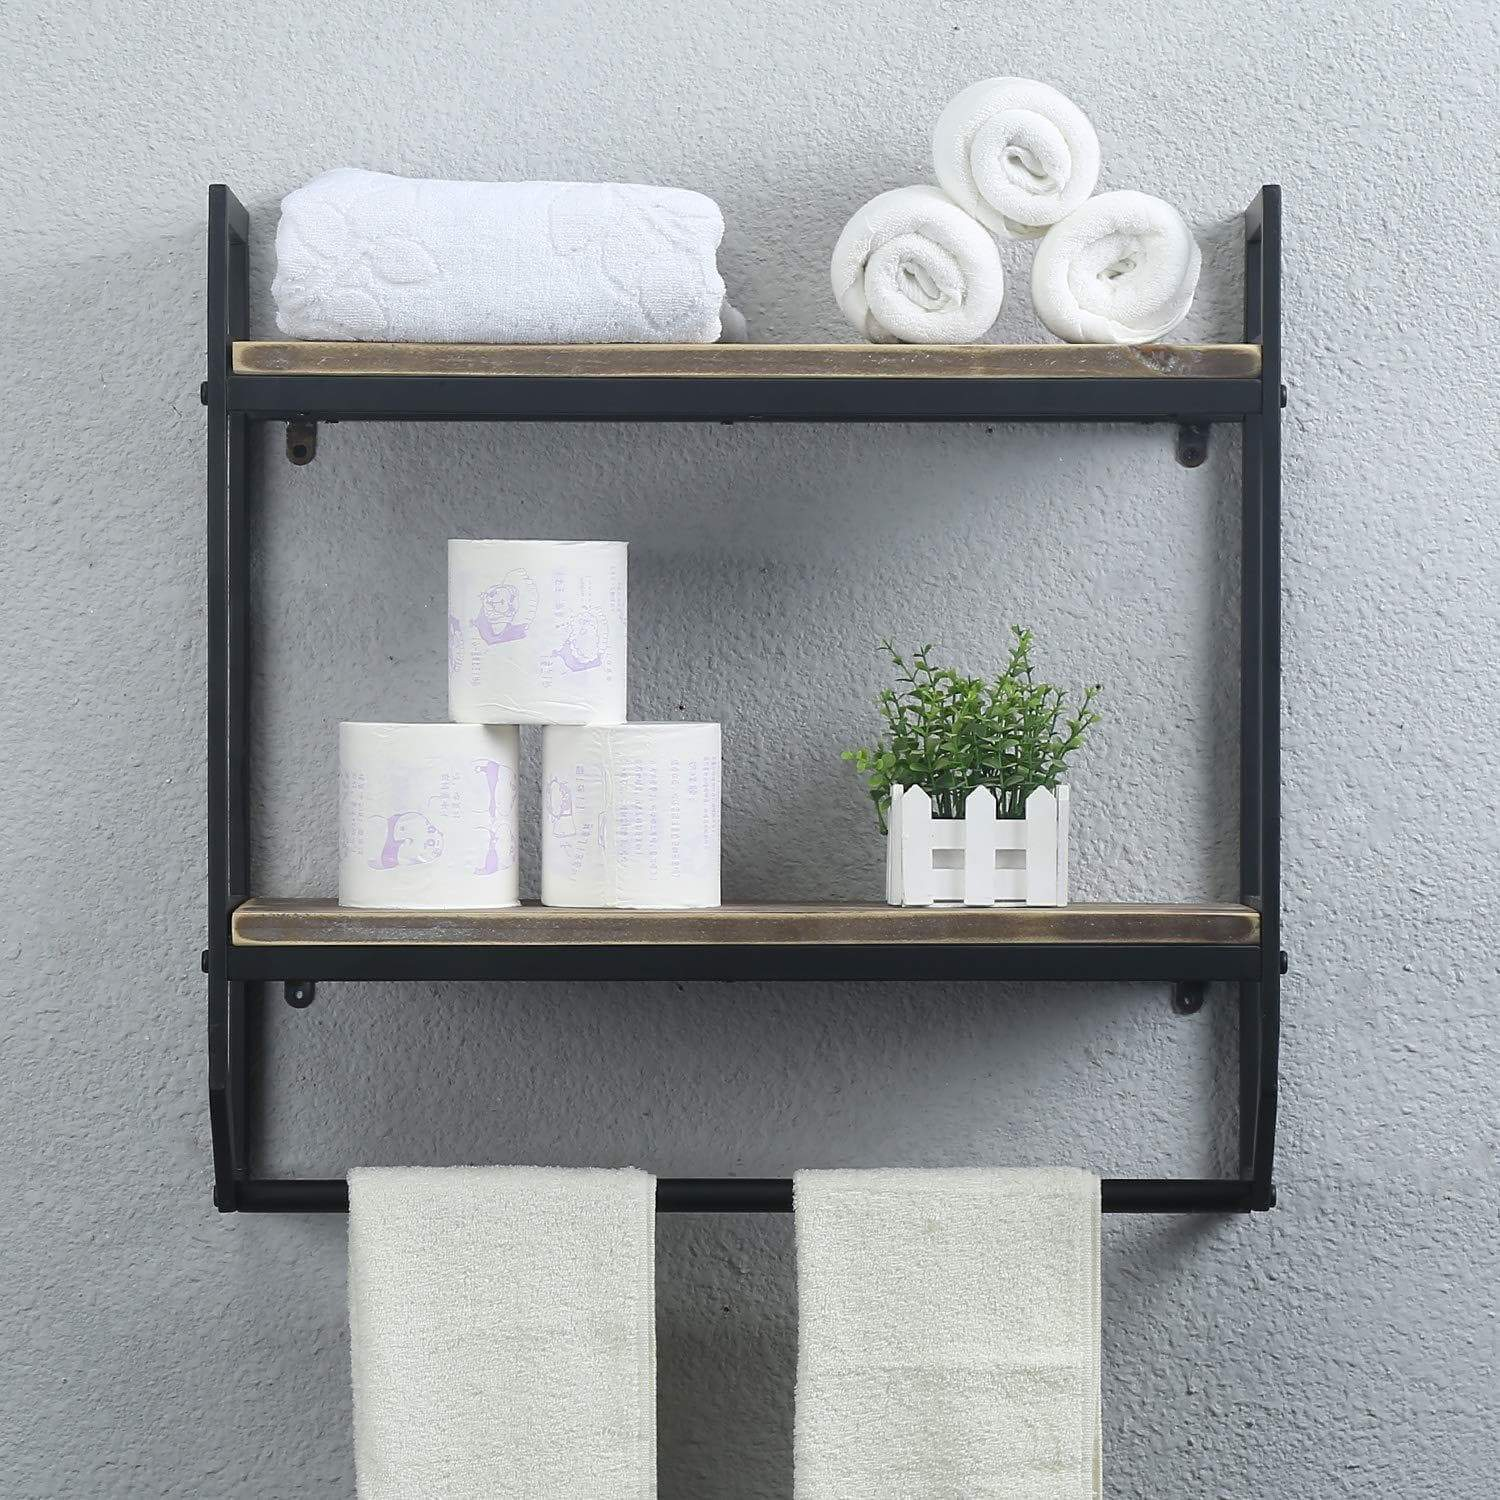 Discover The 2 Tier Metal Industrial 23 6 Bathroom Shelves Wall